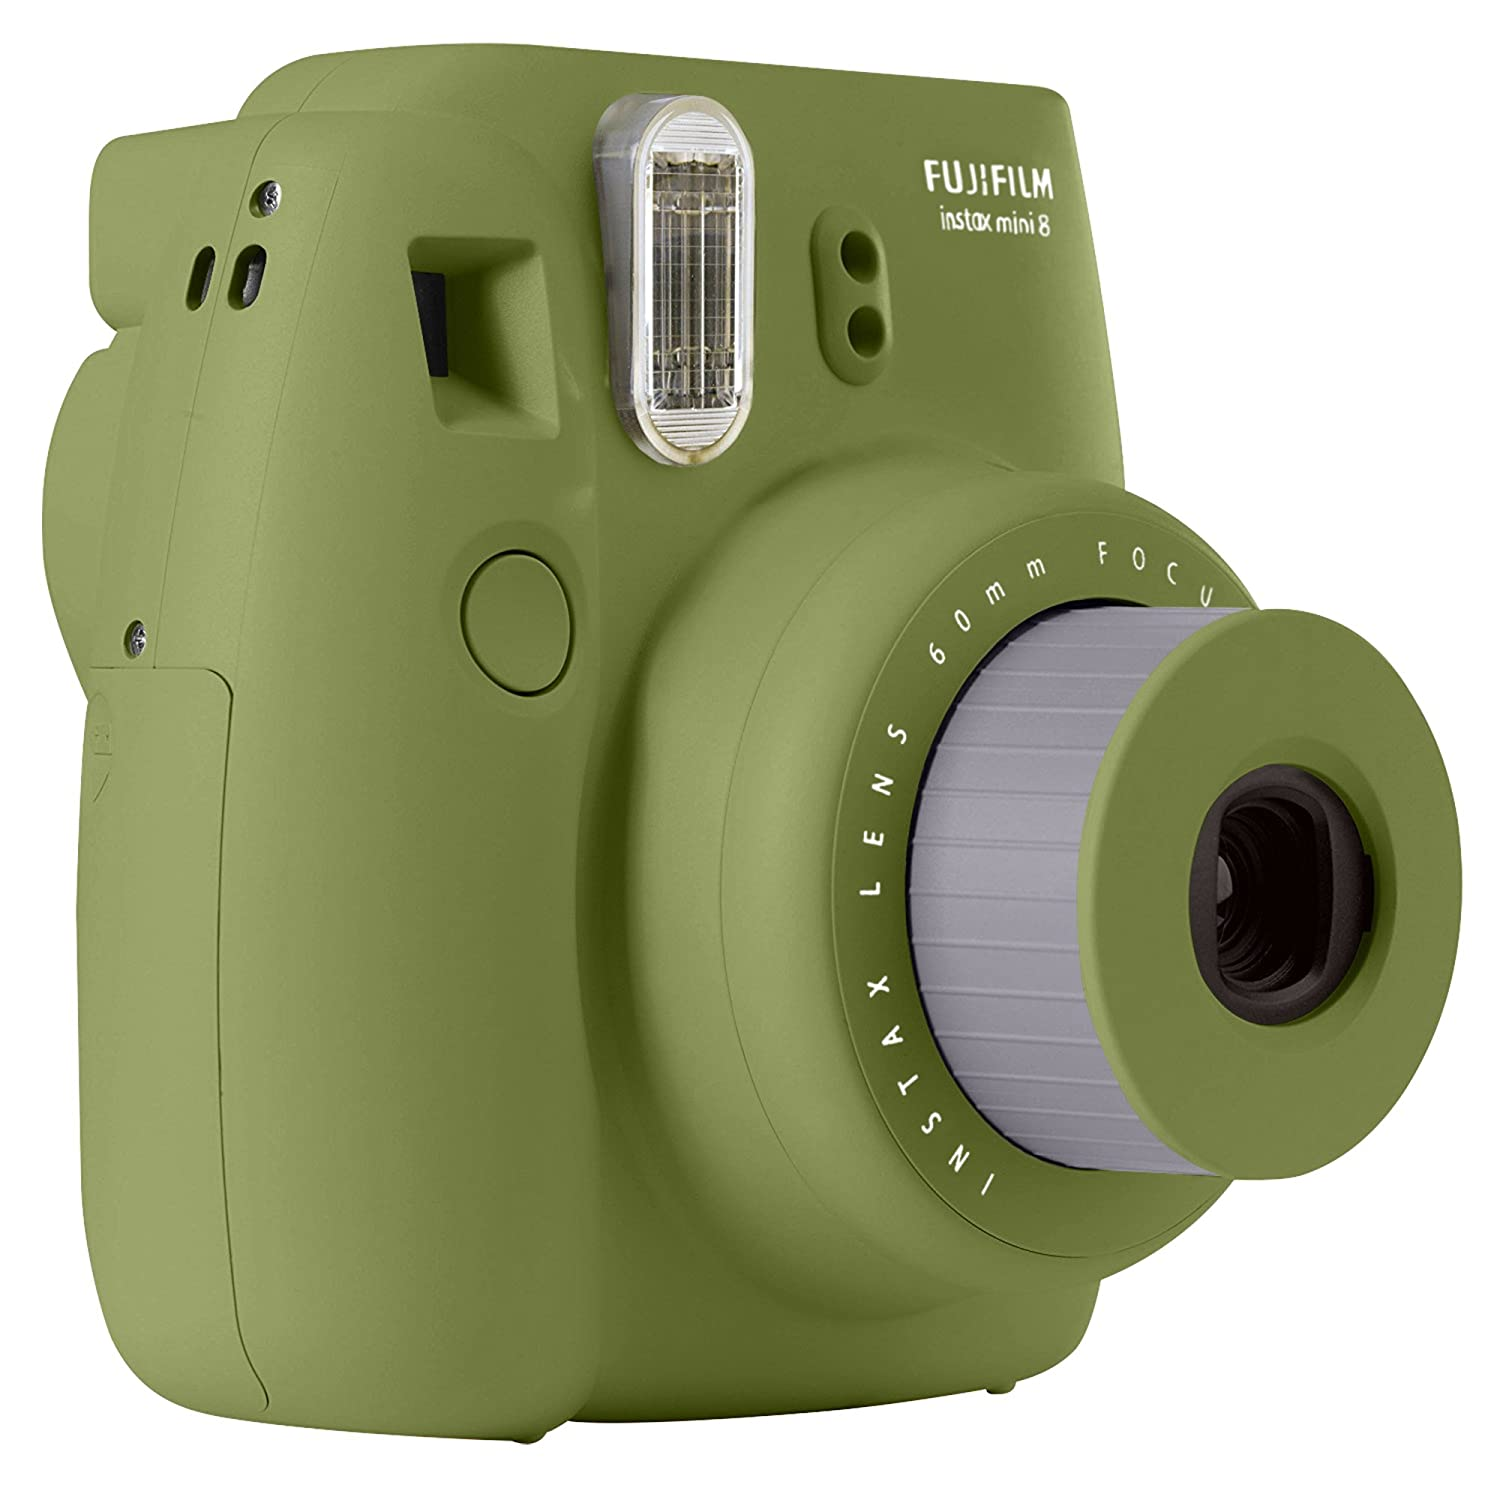 Amazon.com : Fujifilm instax mini 8 Instant Film Camera (AVOCADO ...